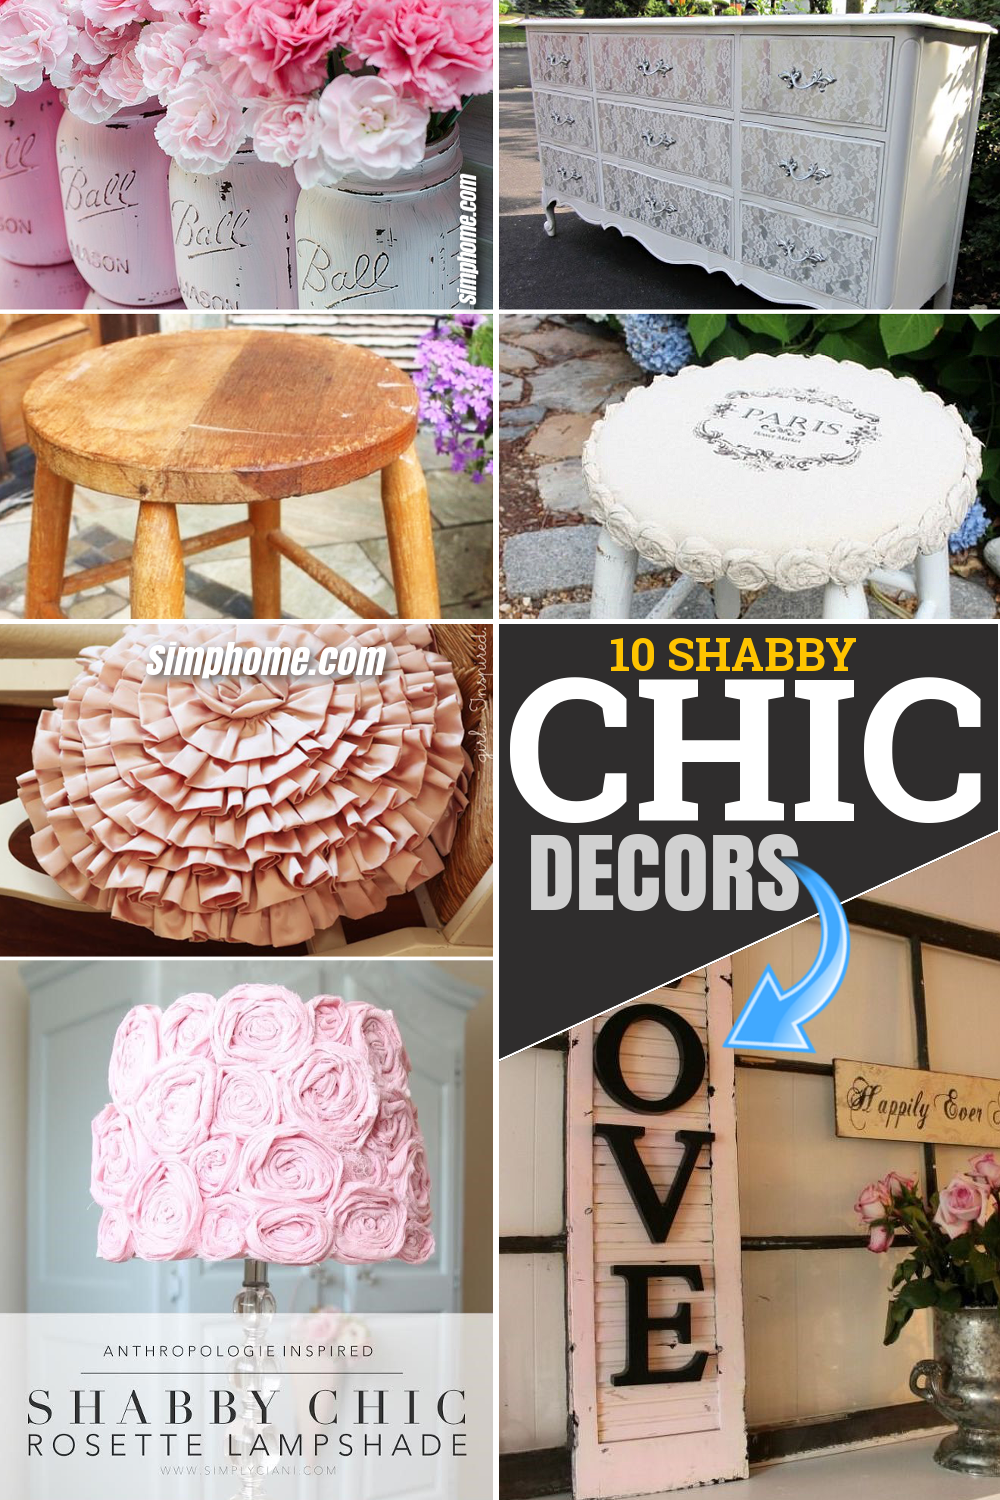 10 DIY Shabby Chic Decor Pieces for Any Corner of Your Room via Simphome.com Pinterest Featured Image